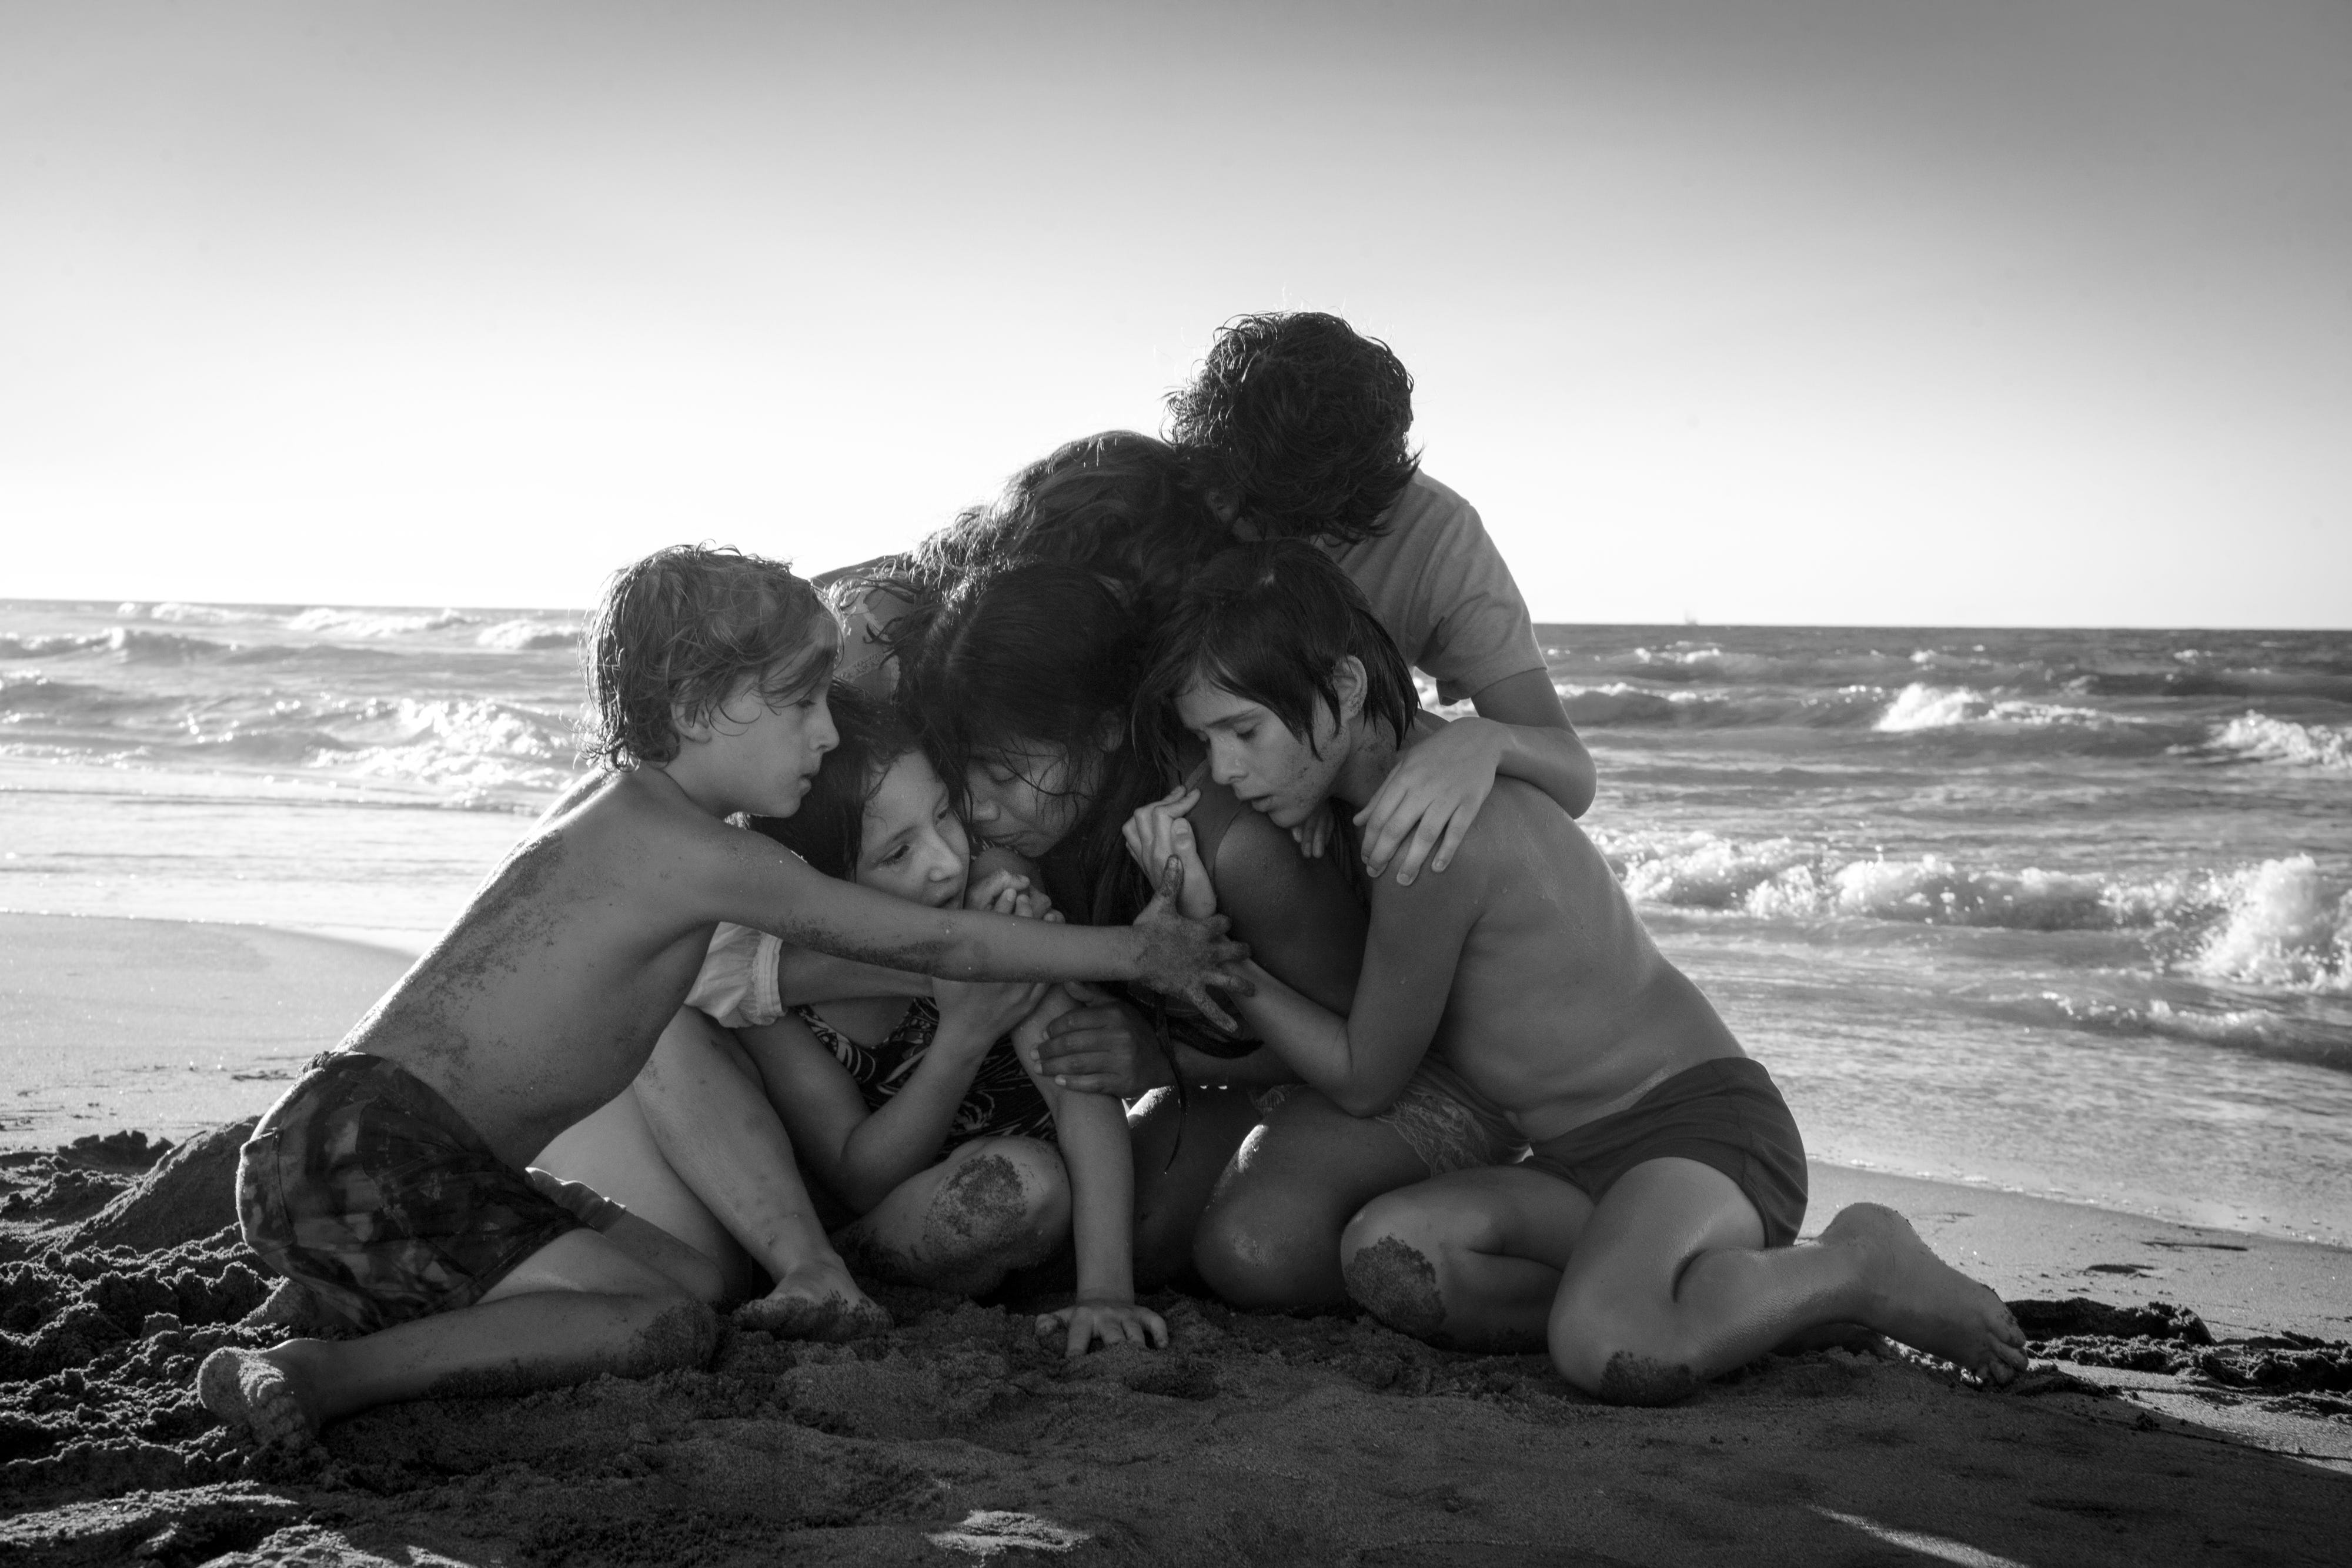 Oscars 2019: 'Roma,' 'Favourite' lead with 10 nominations; 'Black Panther' up for best picture